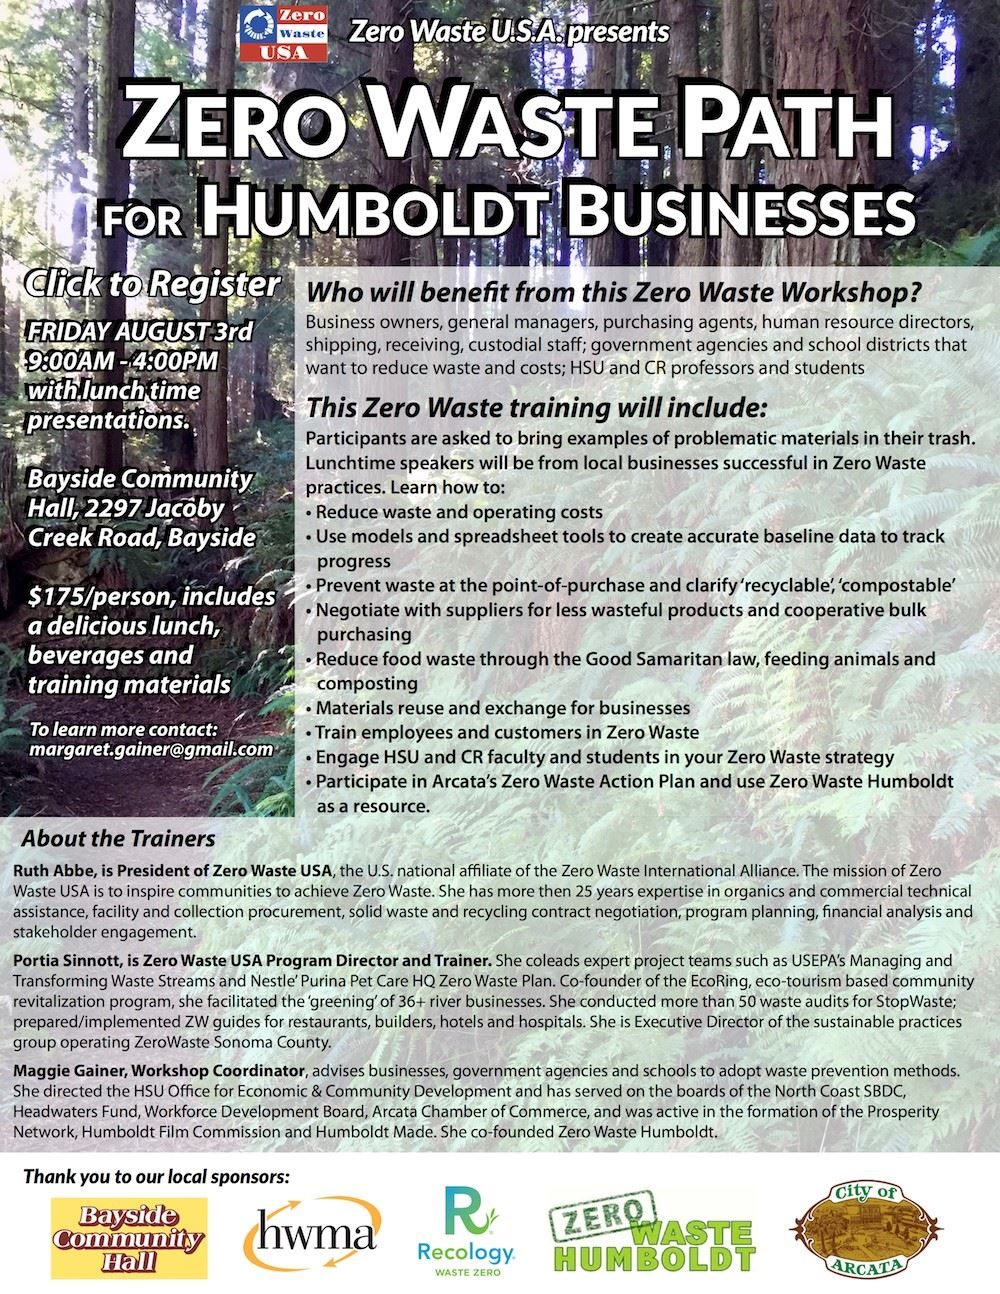 ZW for Businesses Workshop Flier_8-3-18